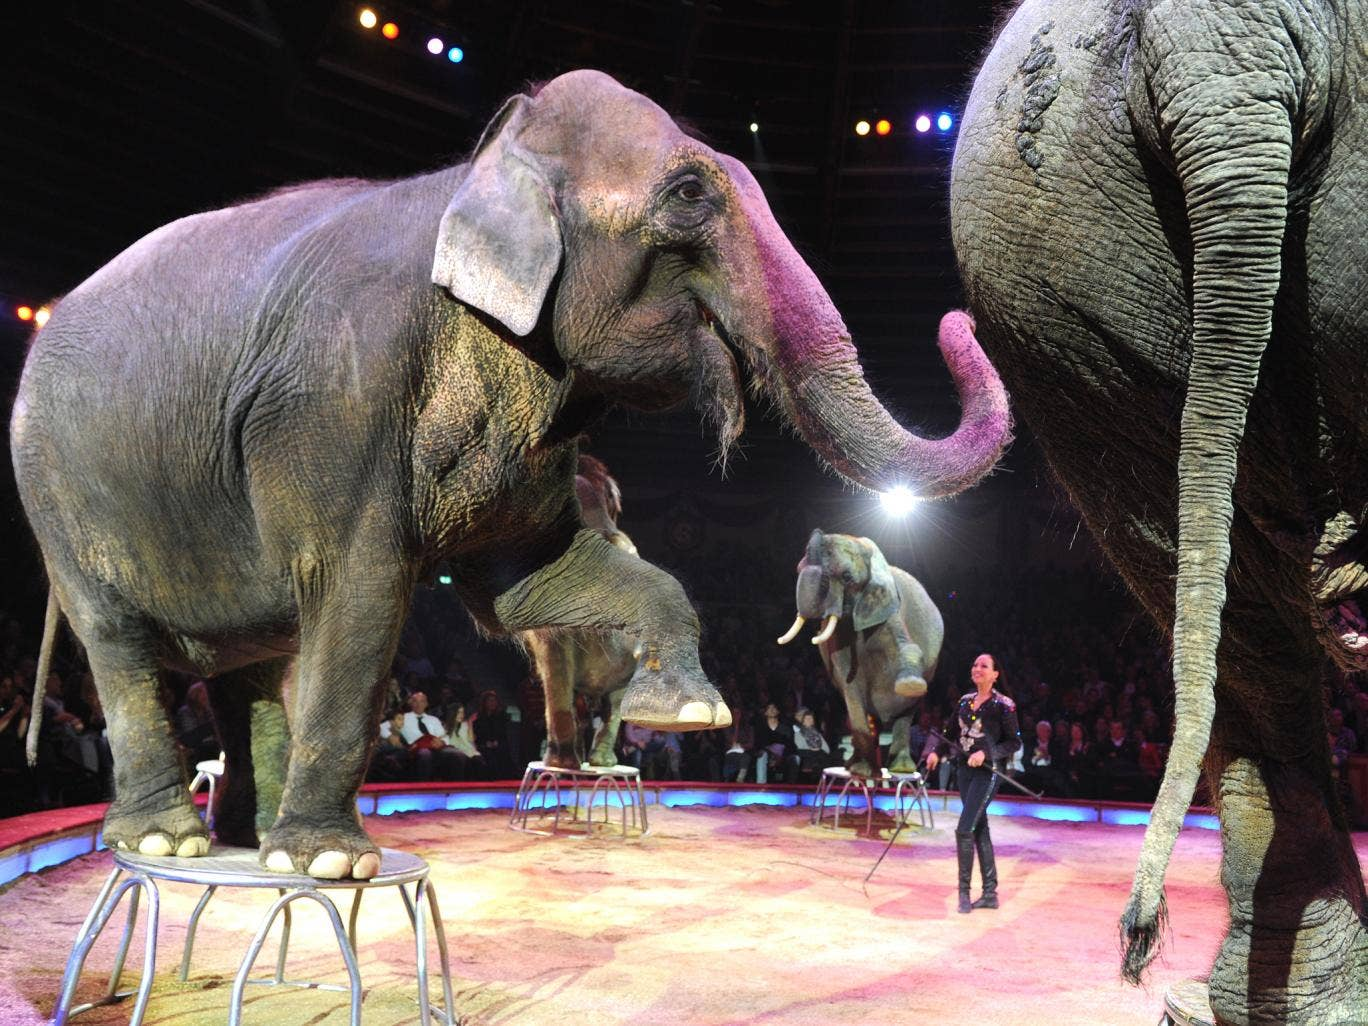 Elephants on stage during a circus performance in Germany